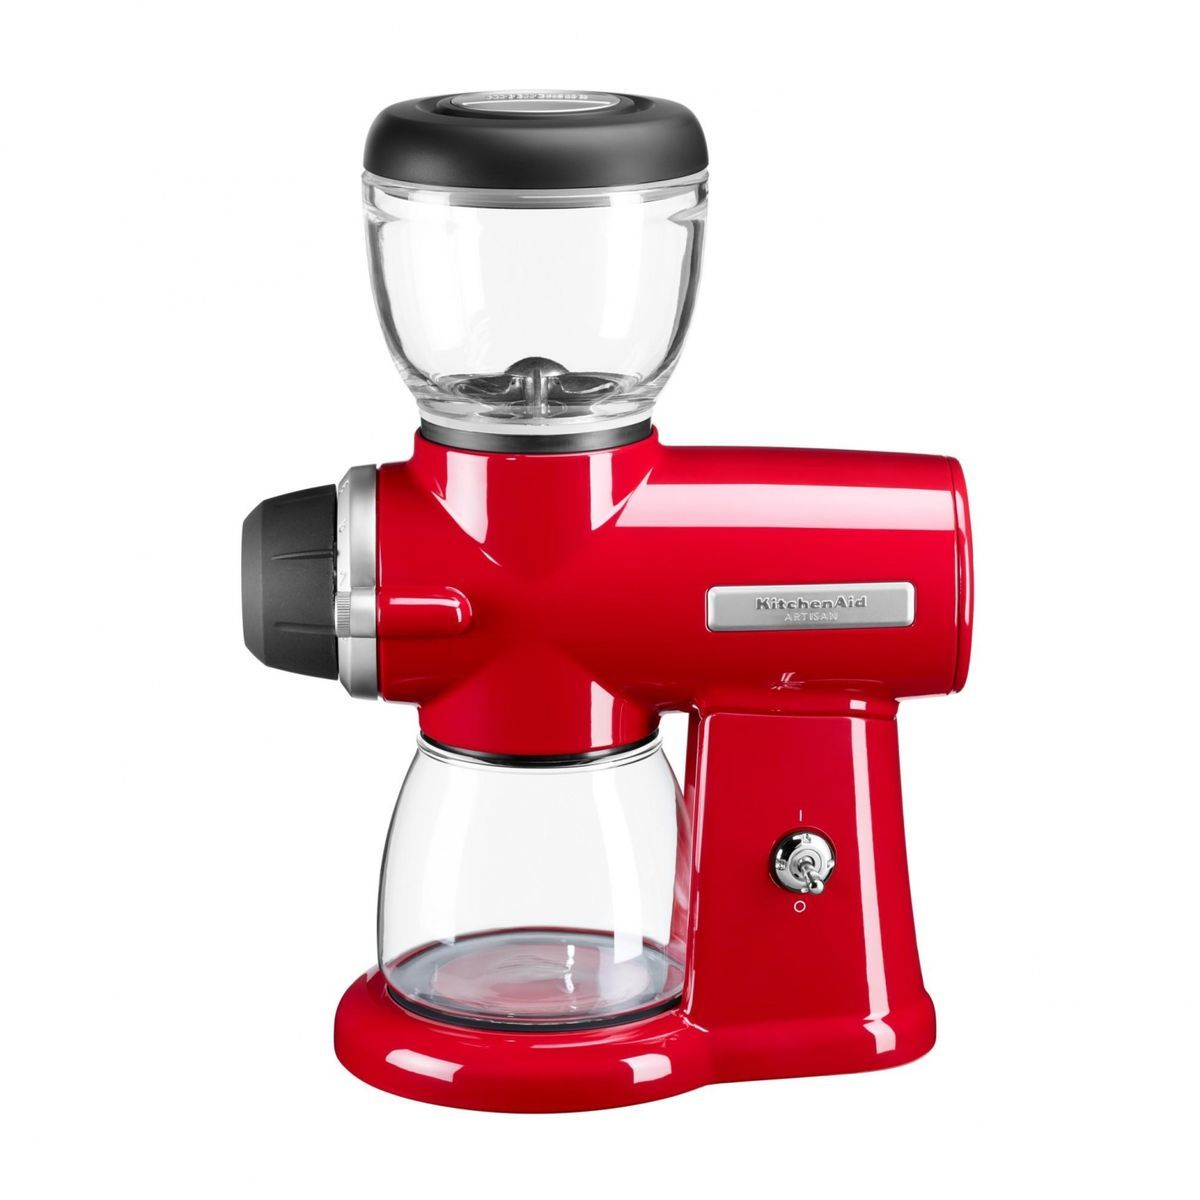 kitchenaid burr grinder  Home Decor